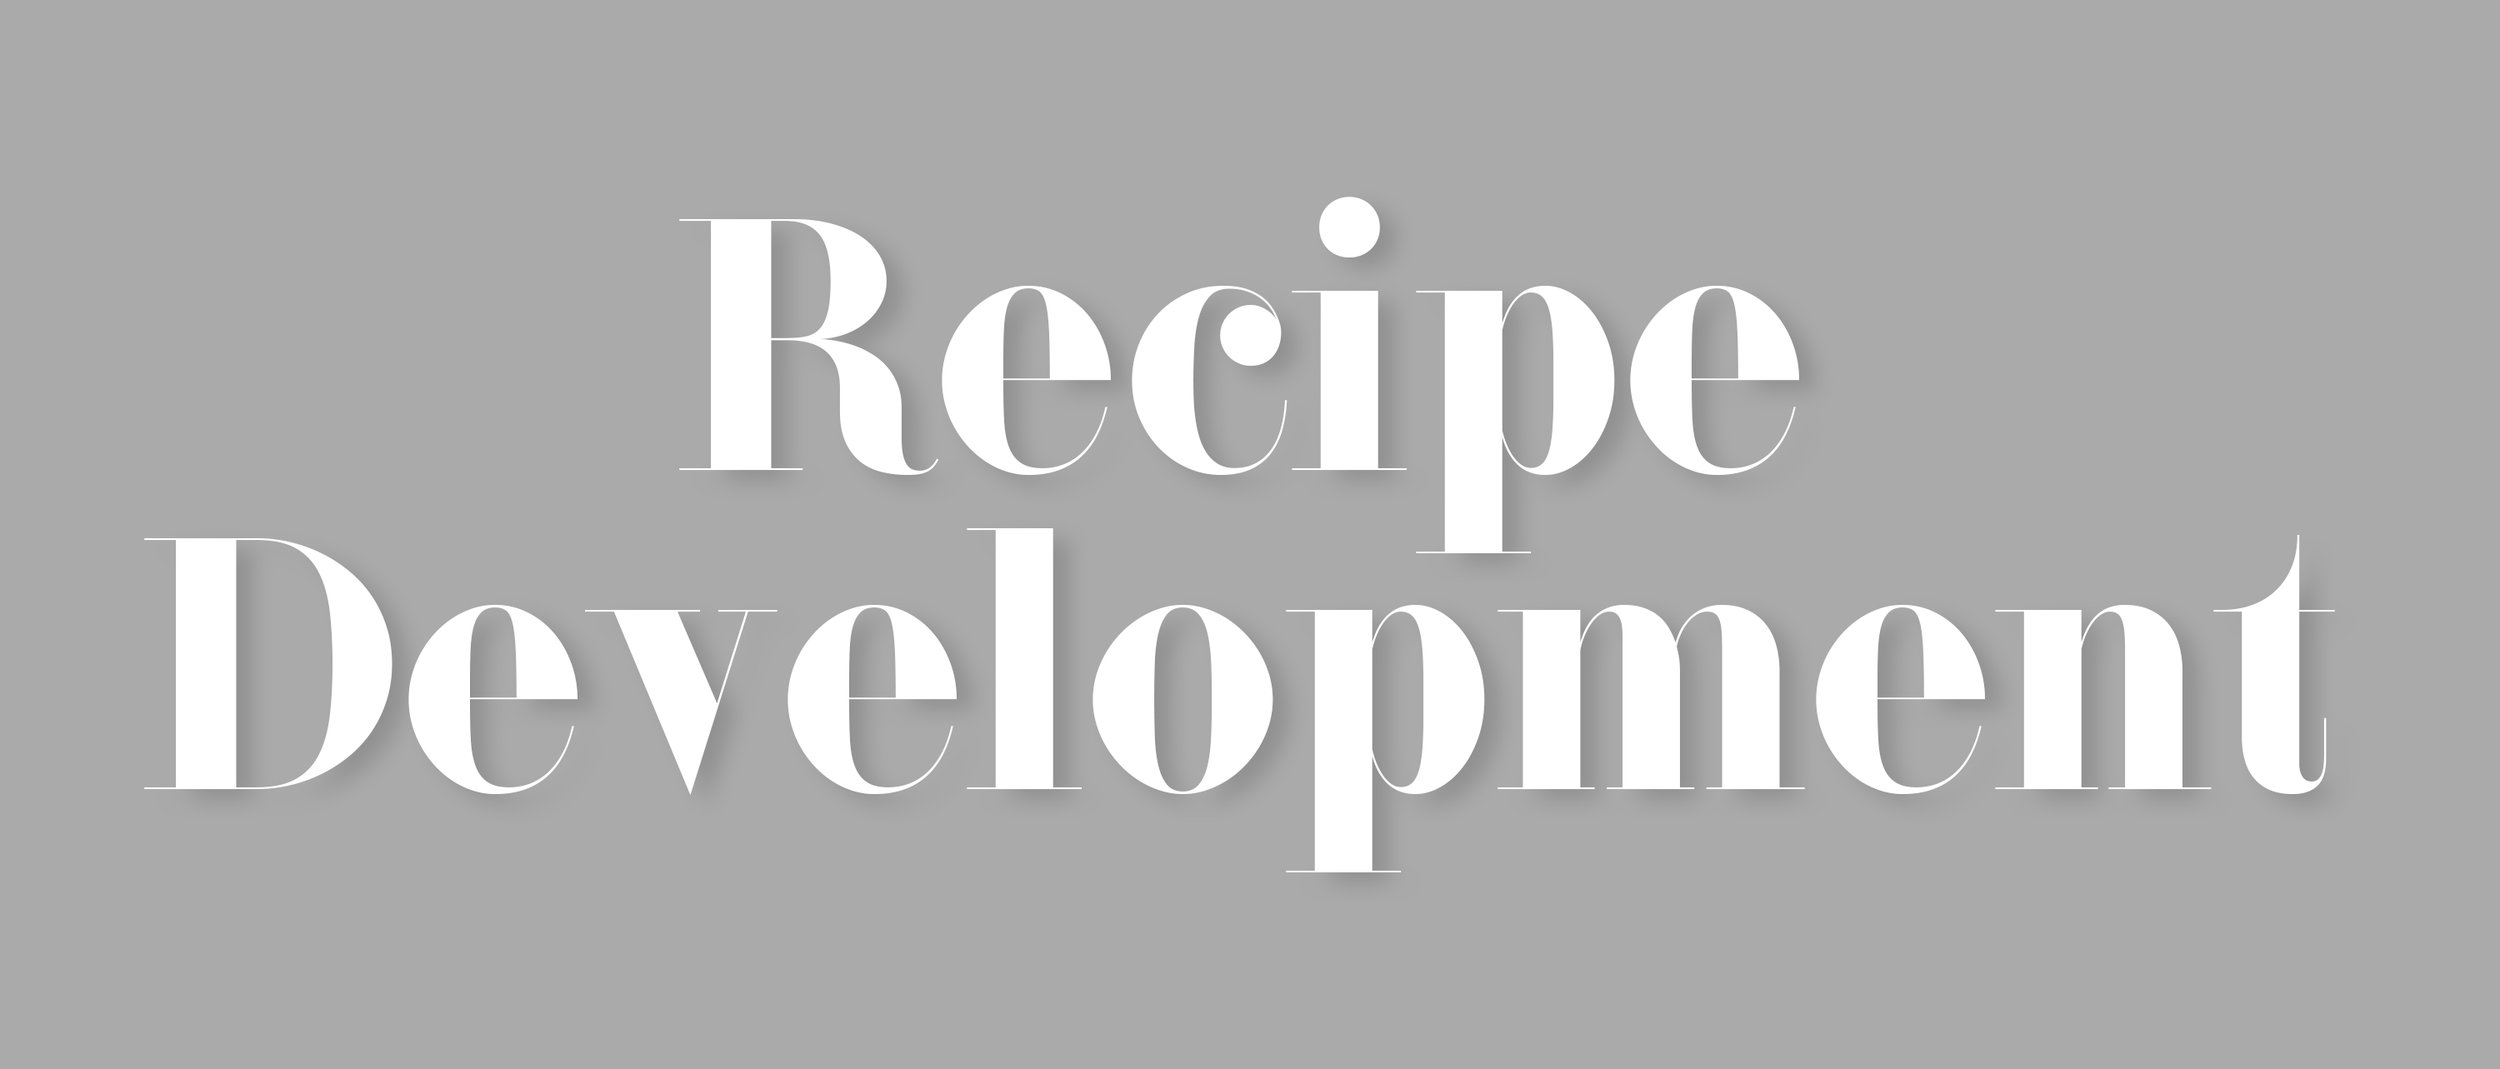 recipe-development-3.jpg